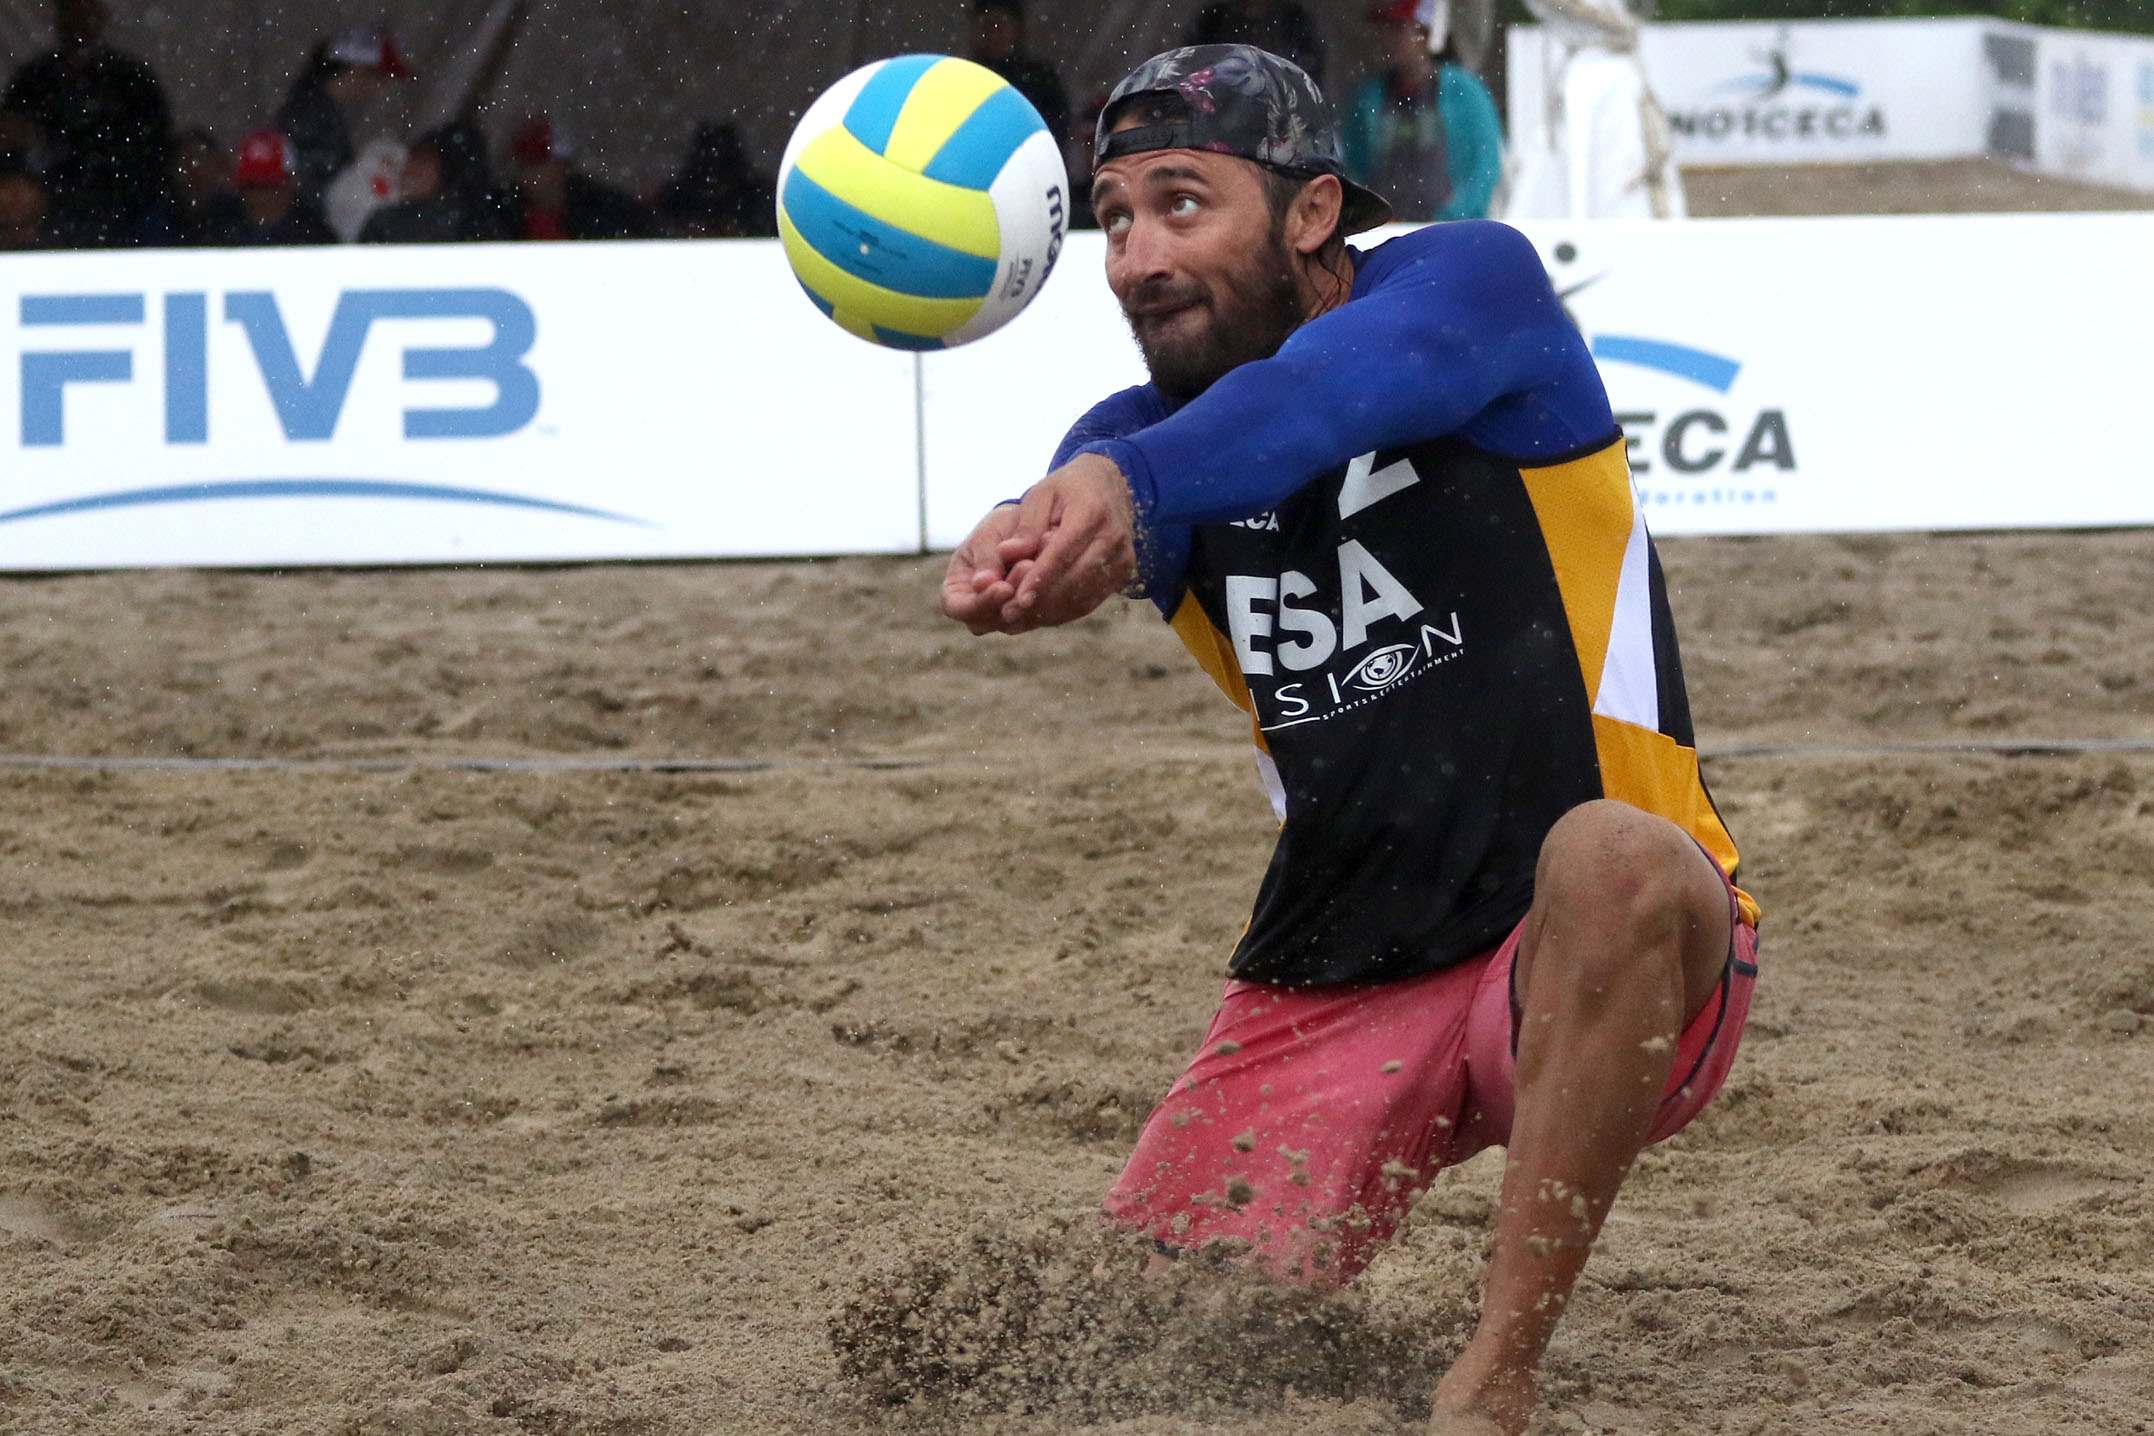 Séptima Parada TOUR NORCECA 2016, North Bay